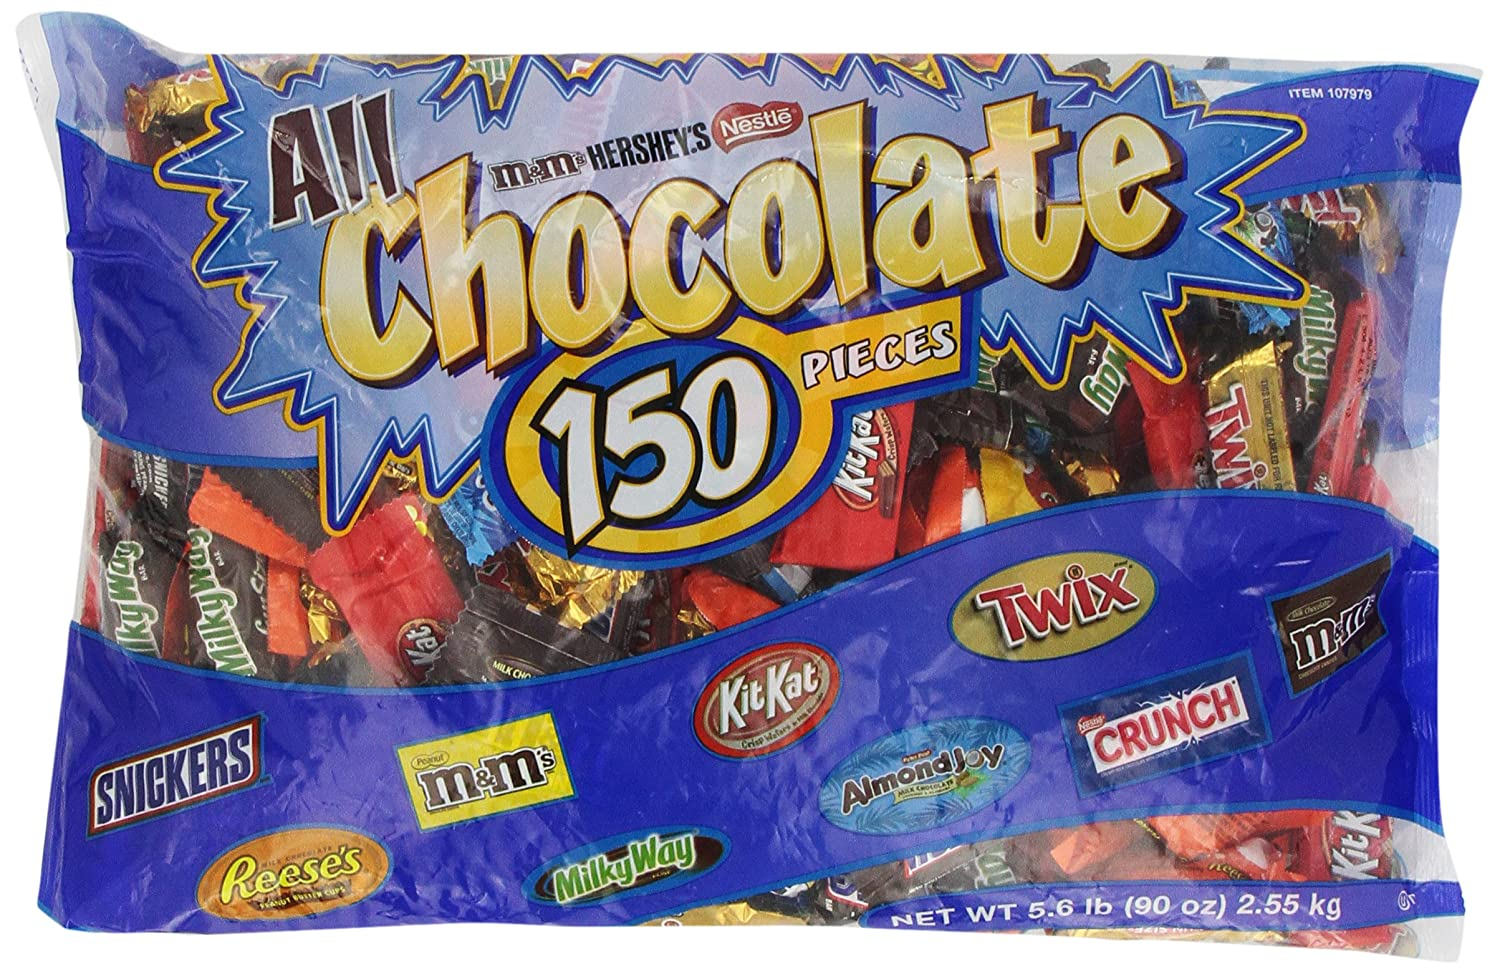 All Chocolate Pieces Hershey's,KitKat,M&M's,Snickers,Twix 90oz